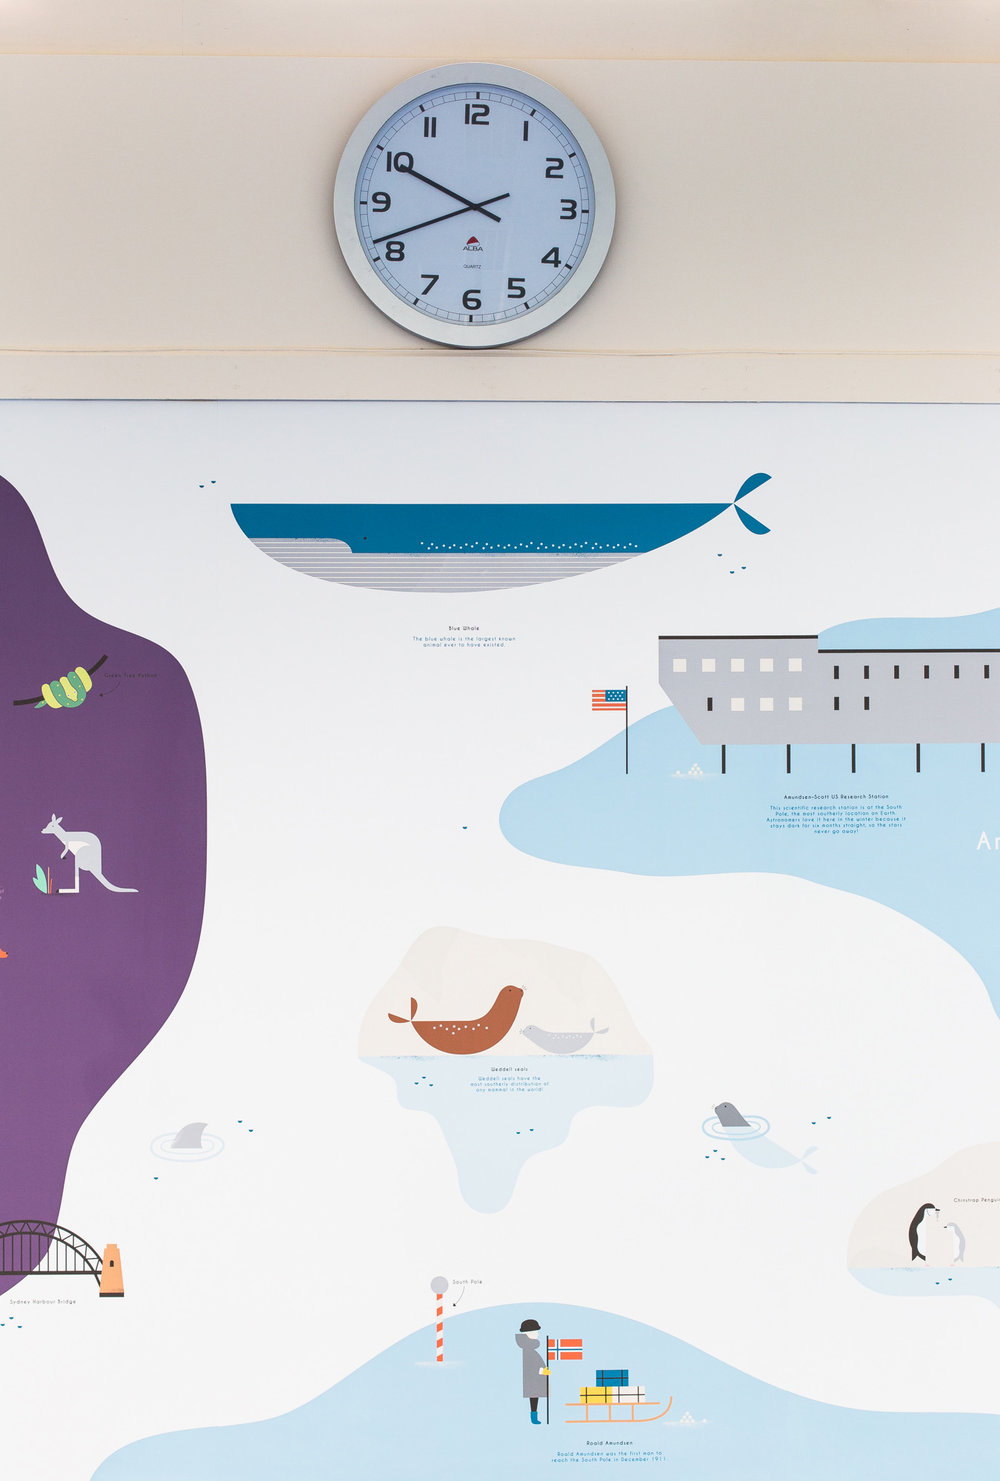 hannahalice-illustration-spacedesign-world-map-grazebrookprimaryschool-mural-antarctica-bluewhale-wallpaper.jpg